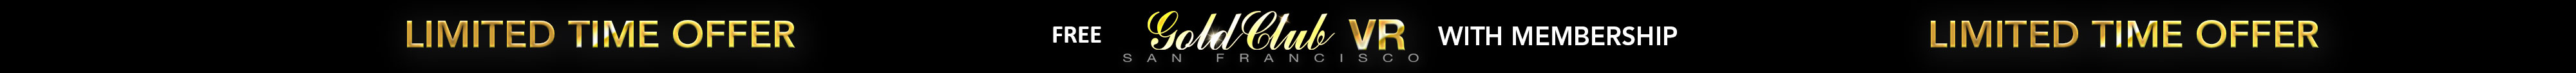 Limited time offer. Free GoldClub VR membership